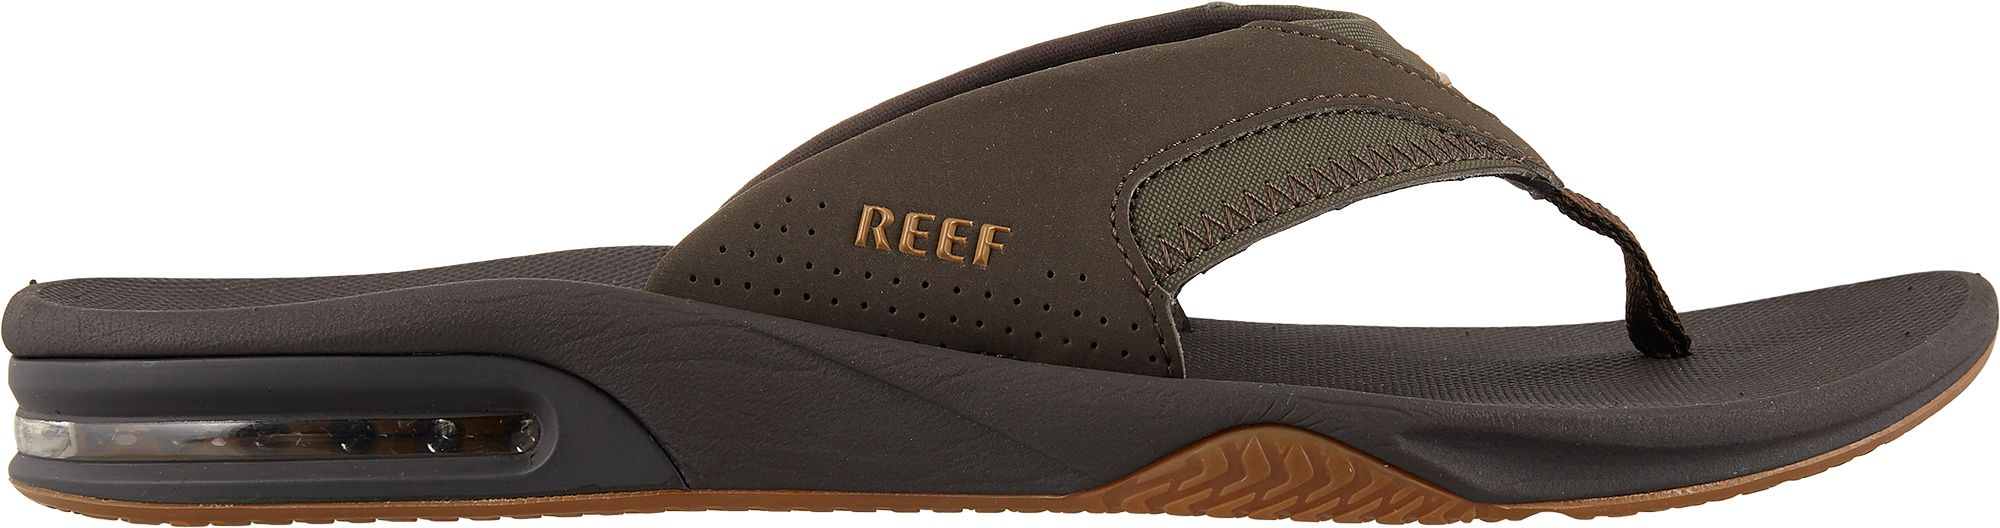 97be1bbaee516 Outlet Discount Authentic Find Great For Sale Reef Fanning Flip Flop (Men)  Sale Footlocker